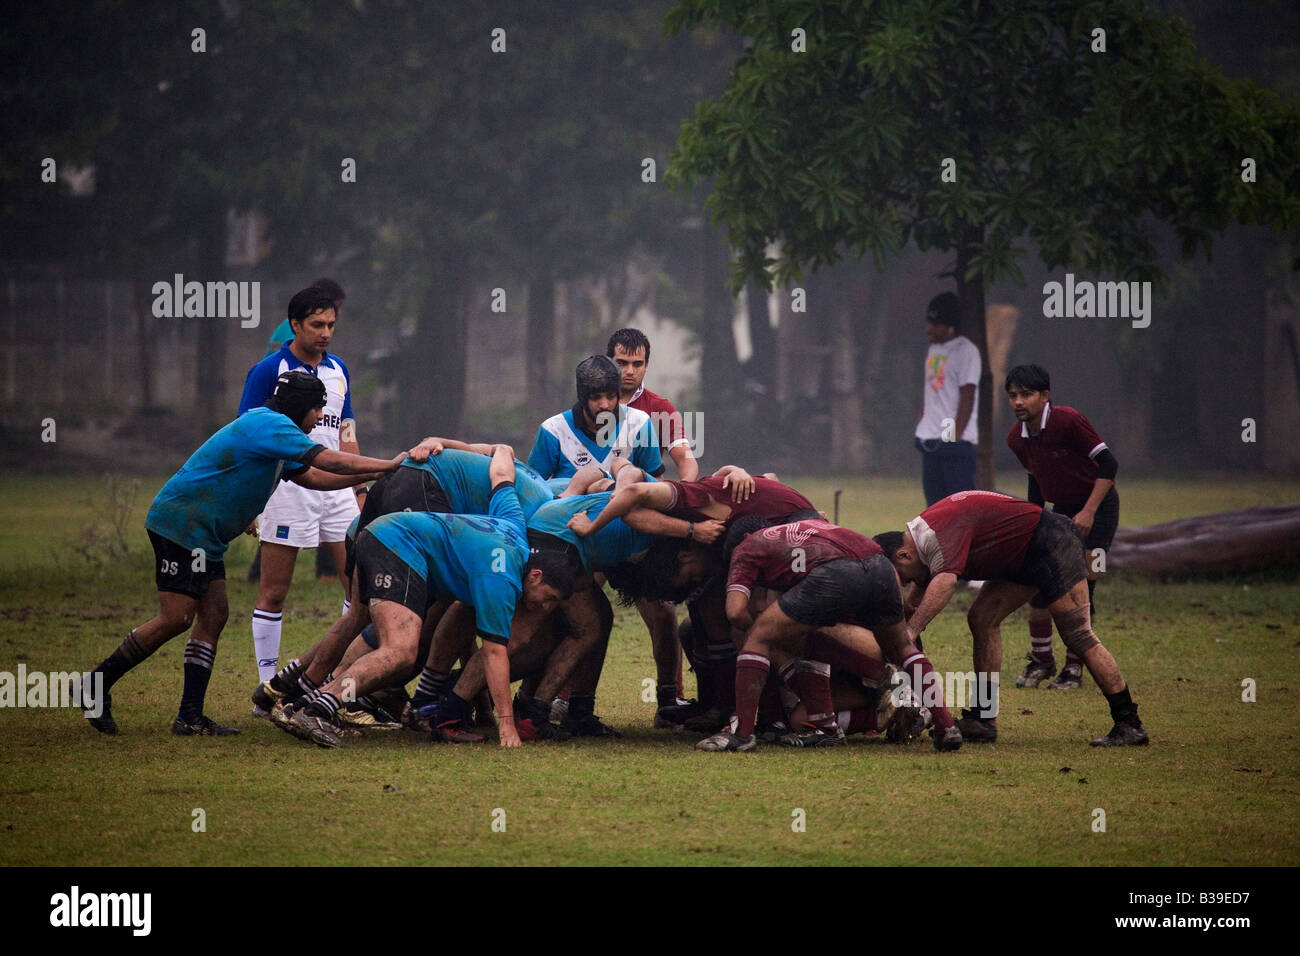 A scrum is held during a rugby match in Kolkata. - Stock Image